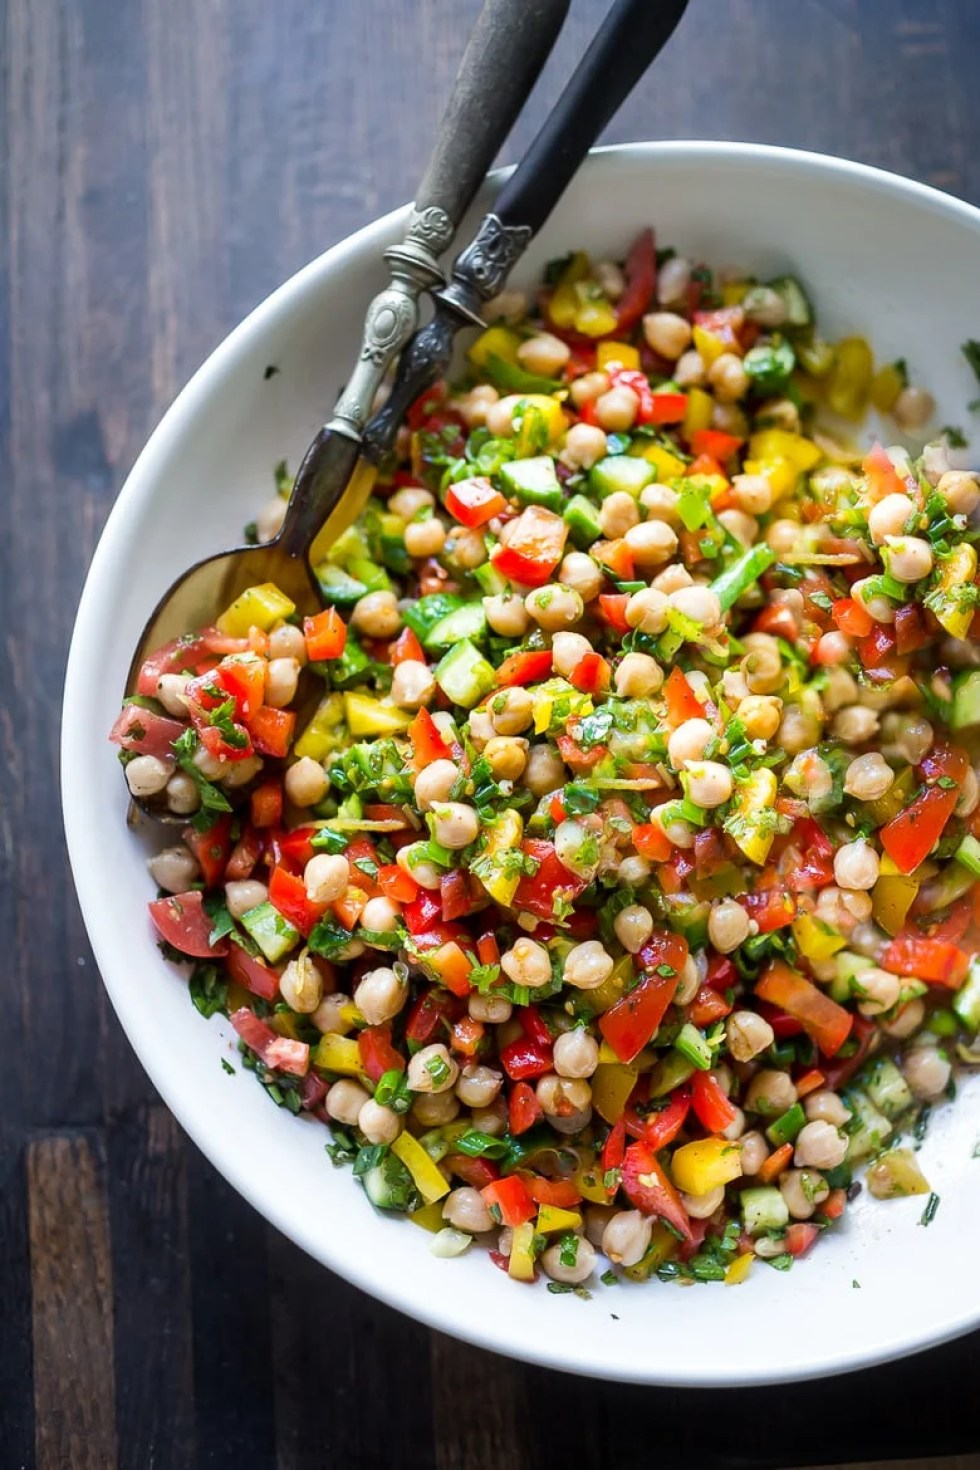 A simple & delicious recipe for Balela Salad, made w/ finely chopped vegetables, chickpeas, fresh herbs, lemon & olive oil. Serve in a pita with tahini sauce or over greens. | www.feastingathome.com